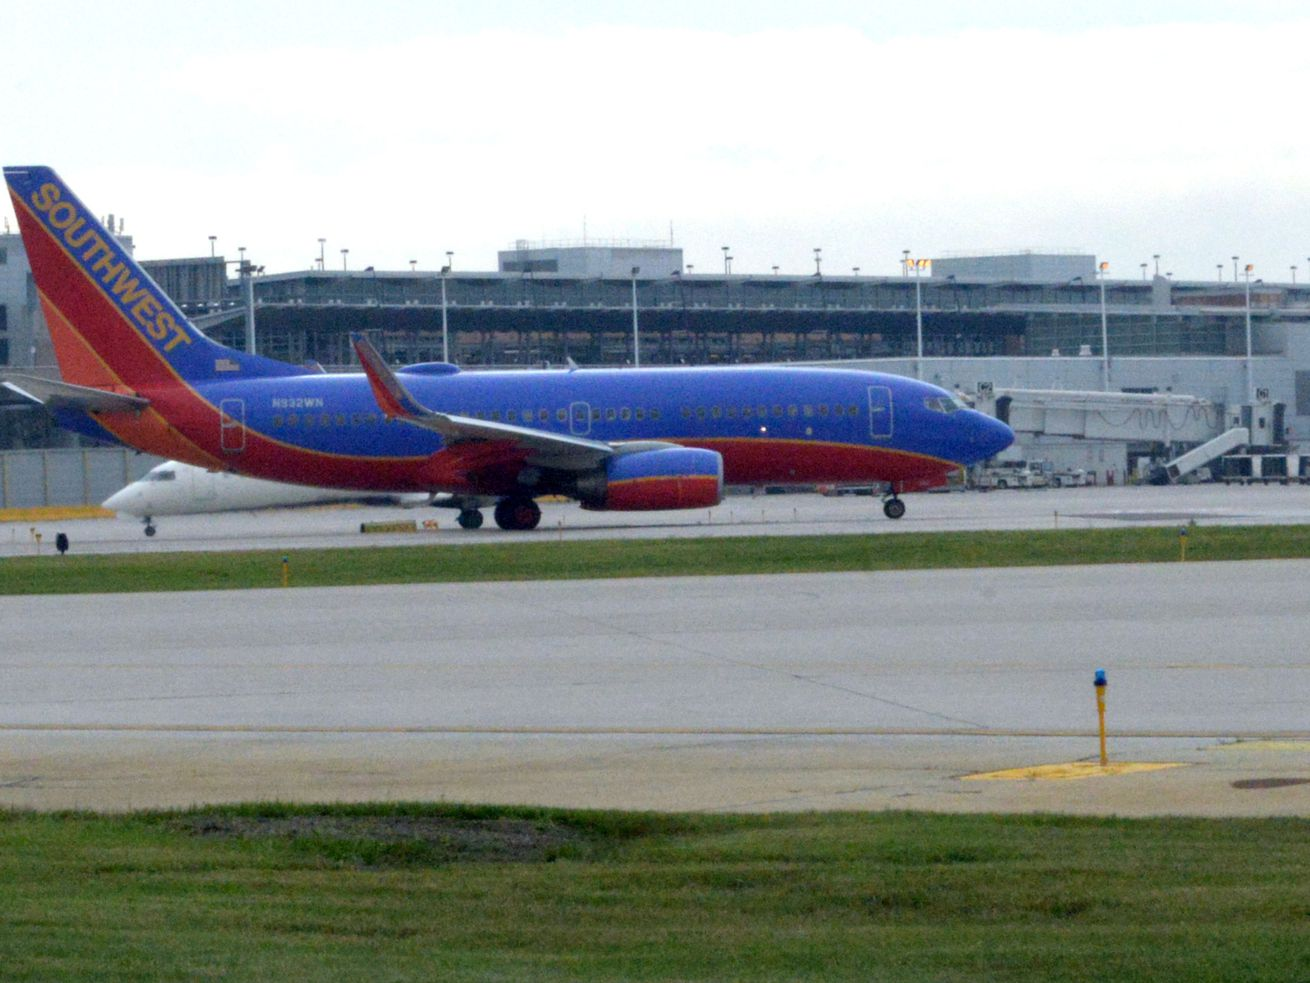 A Southwest Airlines jet at Midway Airport.